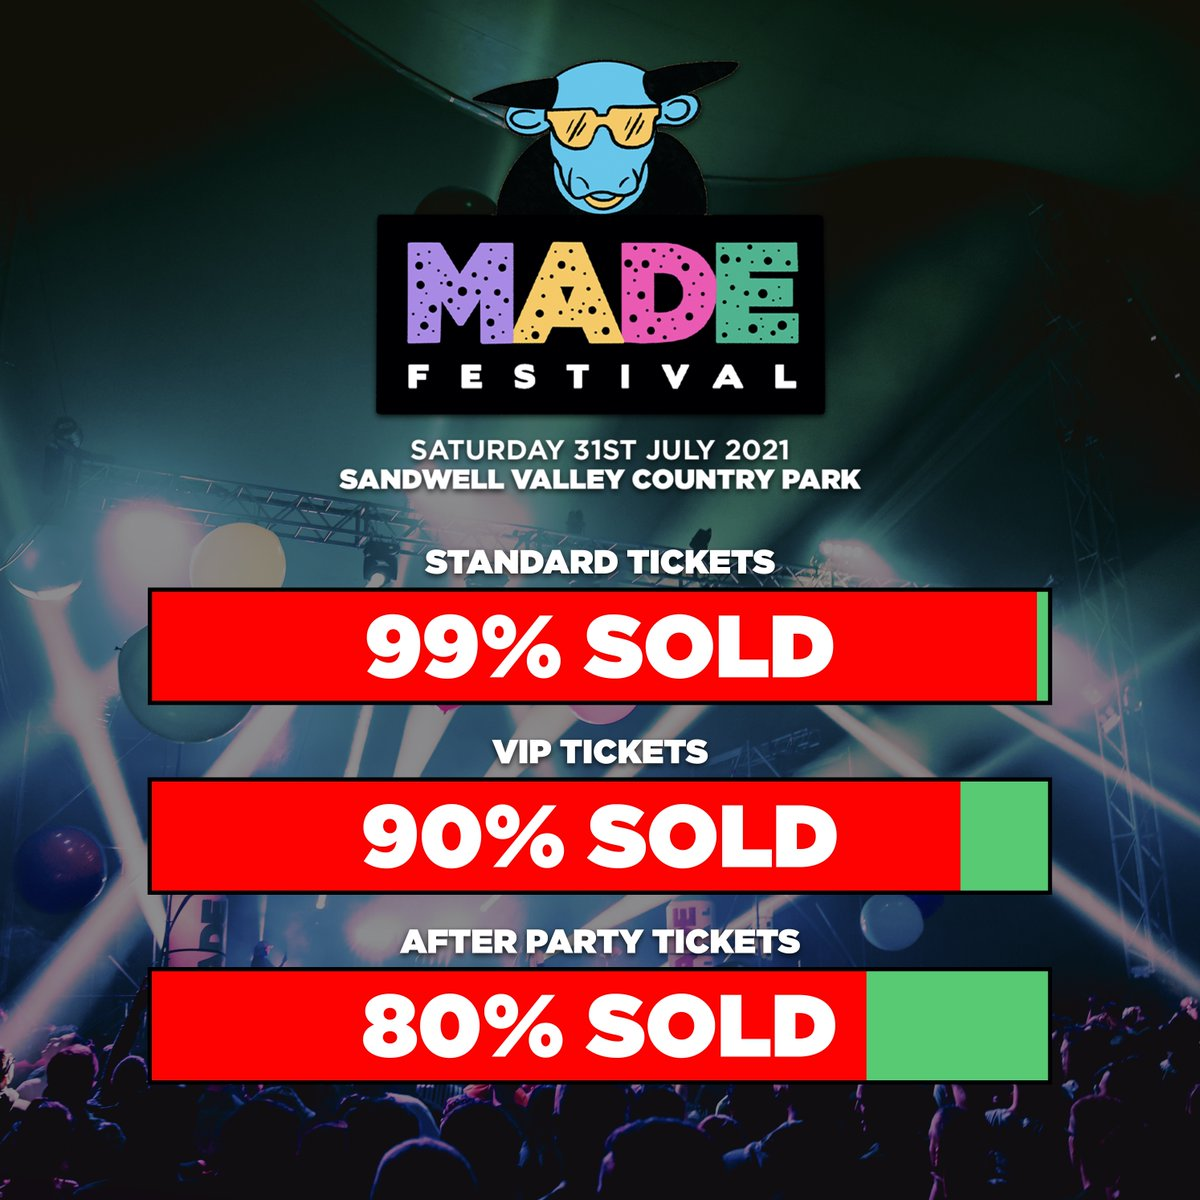 The reaction to MADE Festival 2021 has been truly insane, we cannot wait to see you all in July! 🙌🏻☀️😎  All tickets will go off sale at Midnight TONIGHT 🕛  Any remaining tickets will be released tomorrow at Midday when we release our full line up 😬